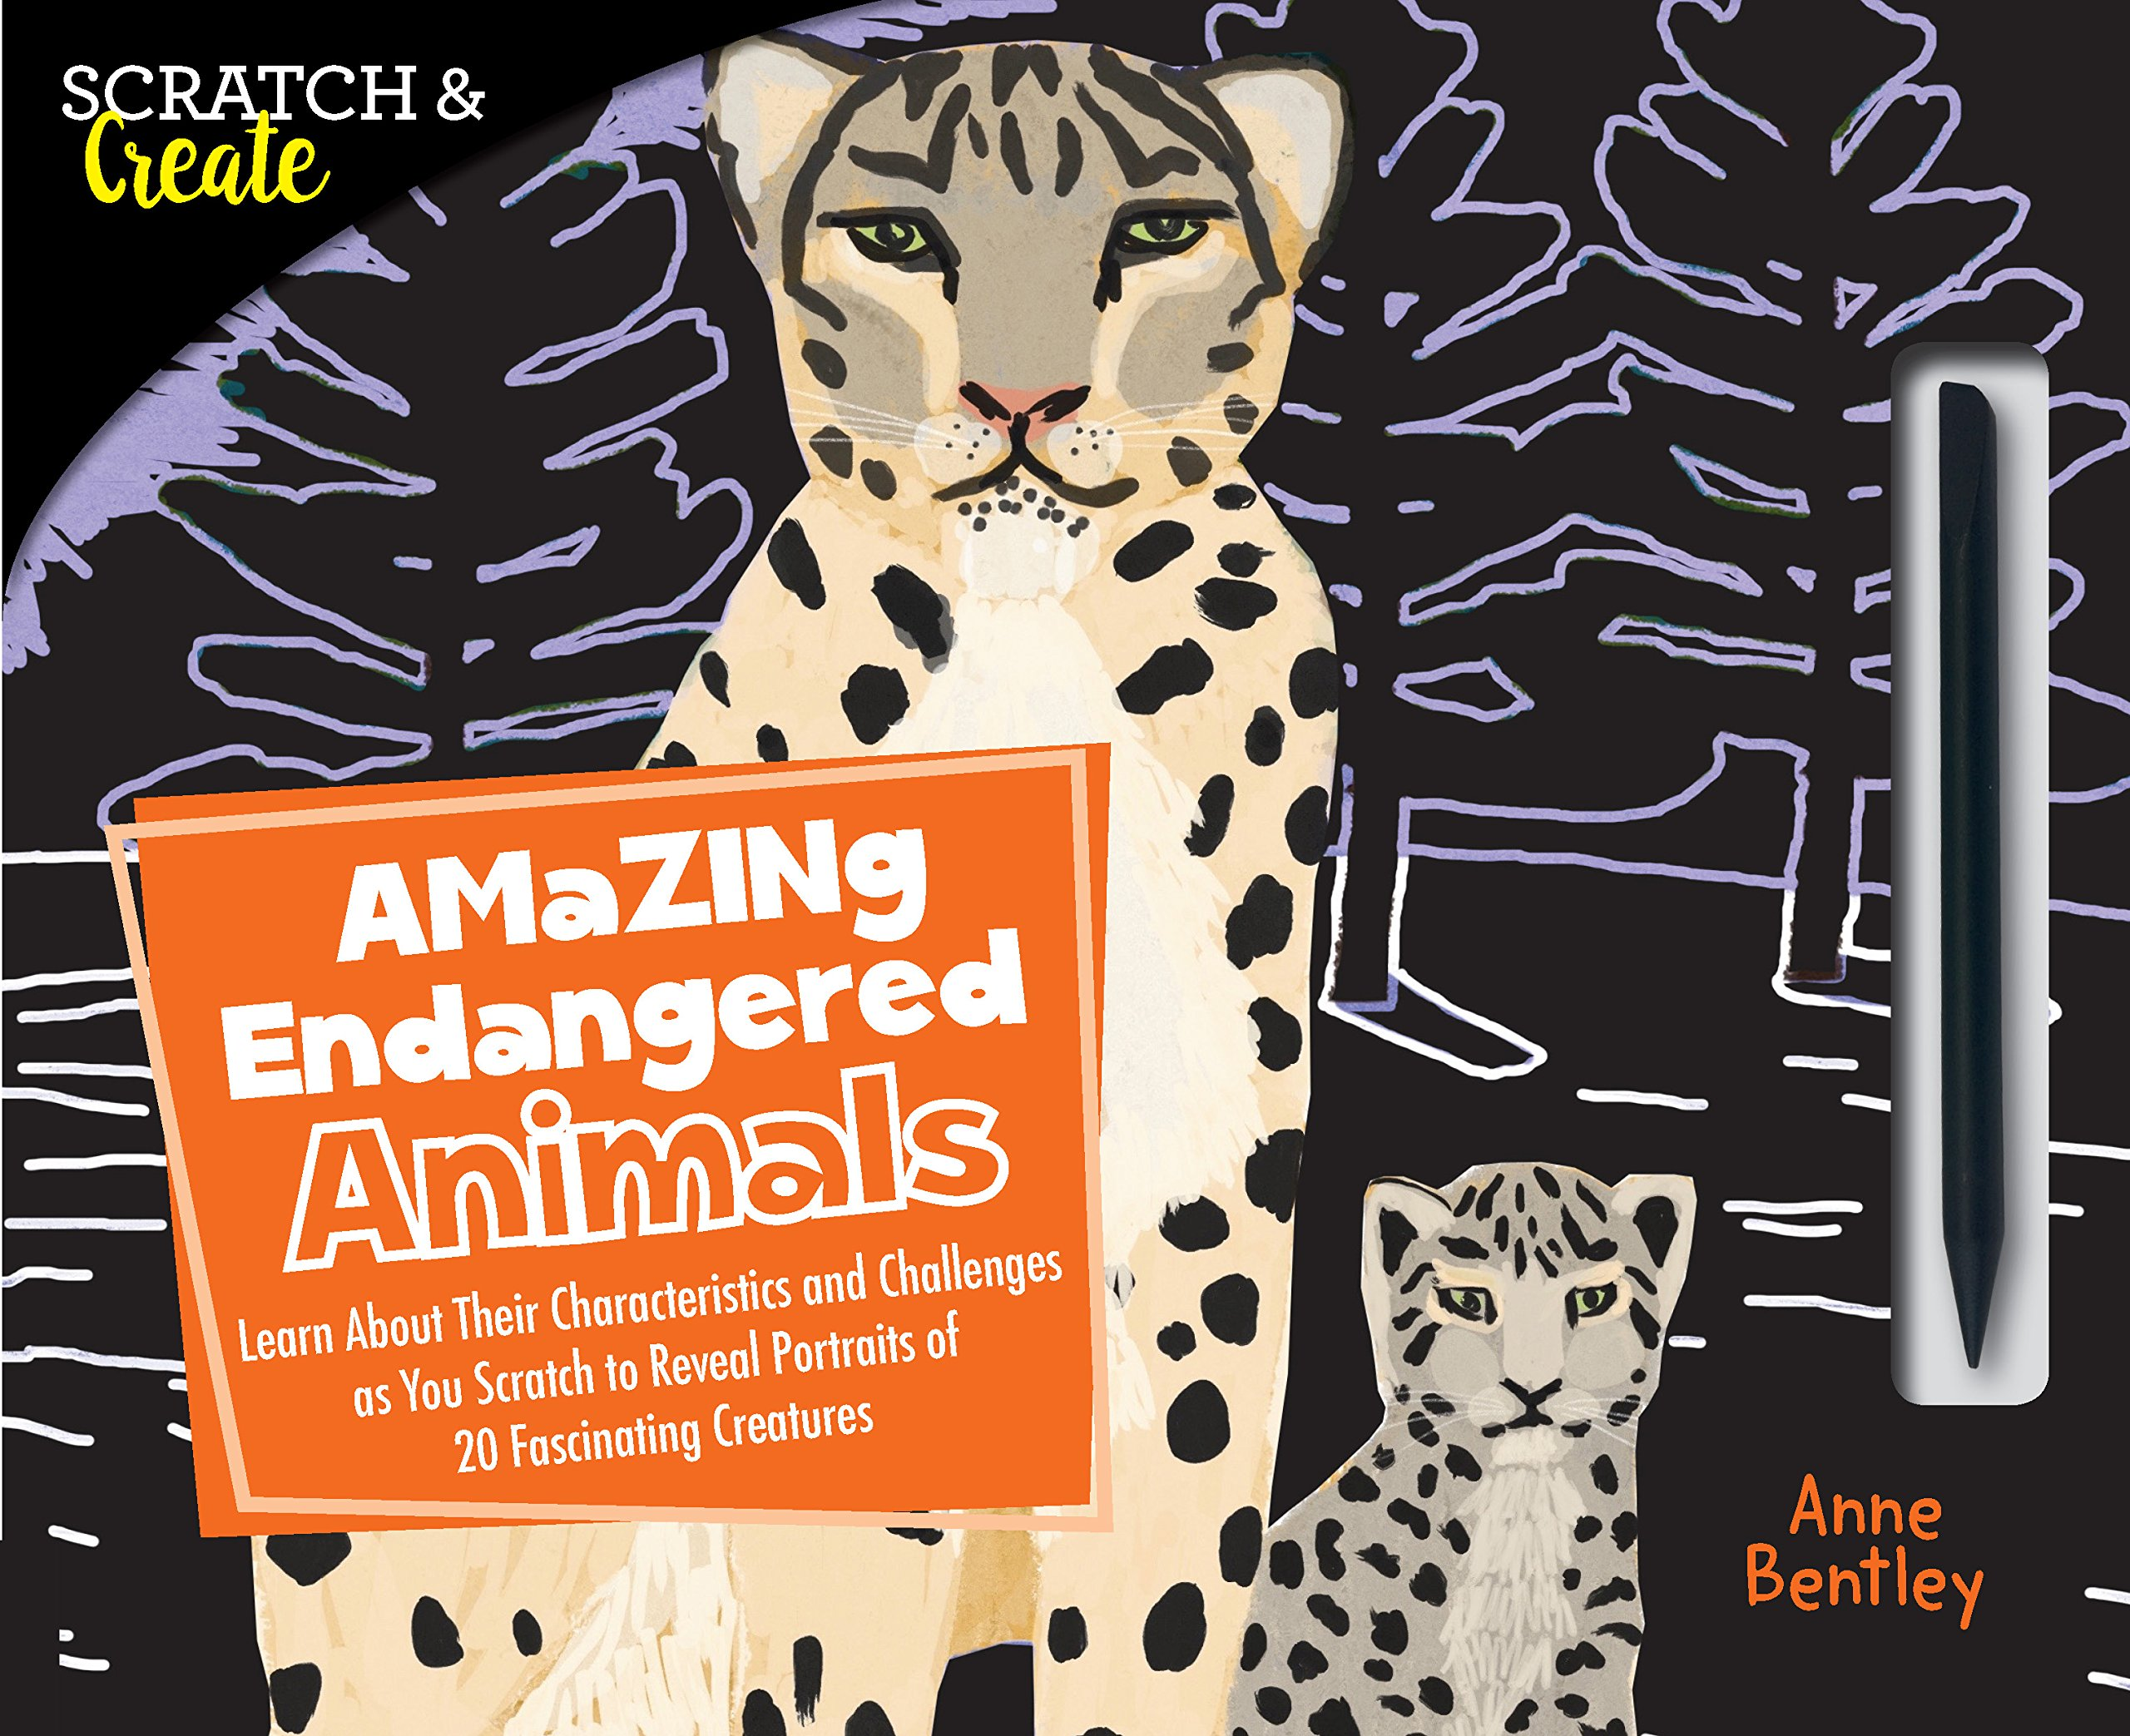 Scratch & Create: Amazing Endangered Animals: Learn About Their Characteristics and Challenges as you Scratch to Reveal Portraits of 20 Fascinating Creatures